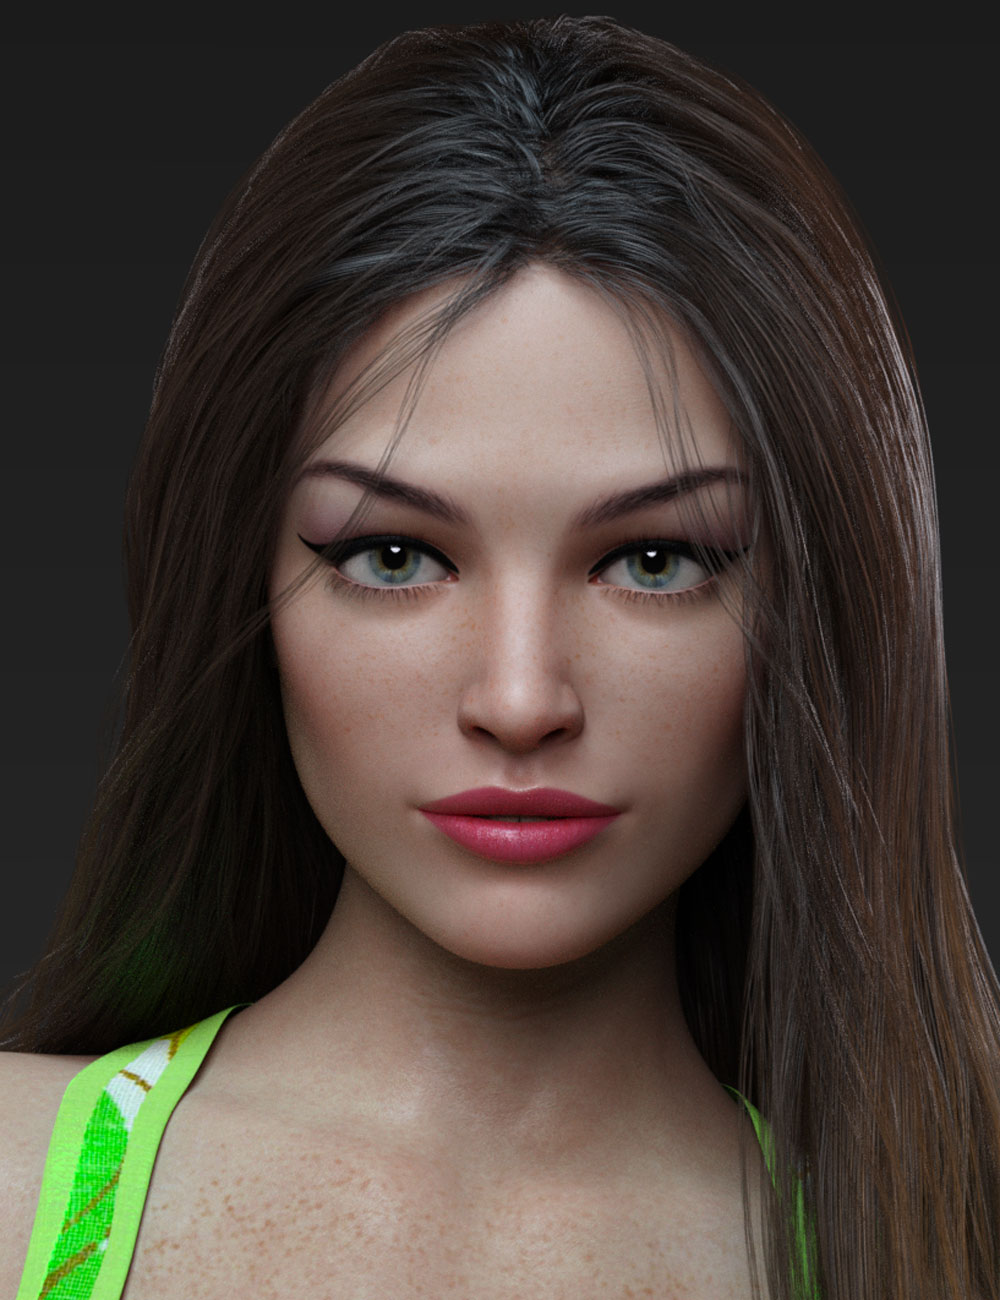 Minthy for Genesis 8 Female by: Mousso, 3D Models by Daz 3D